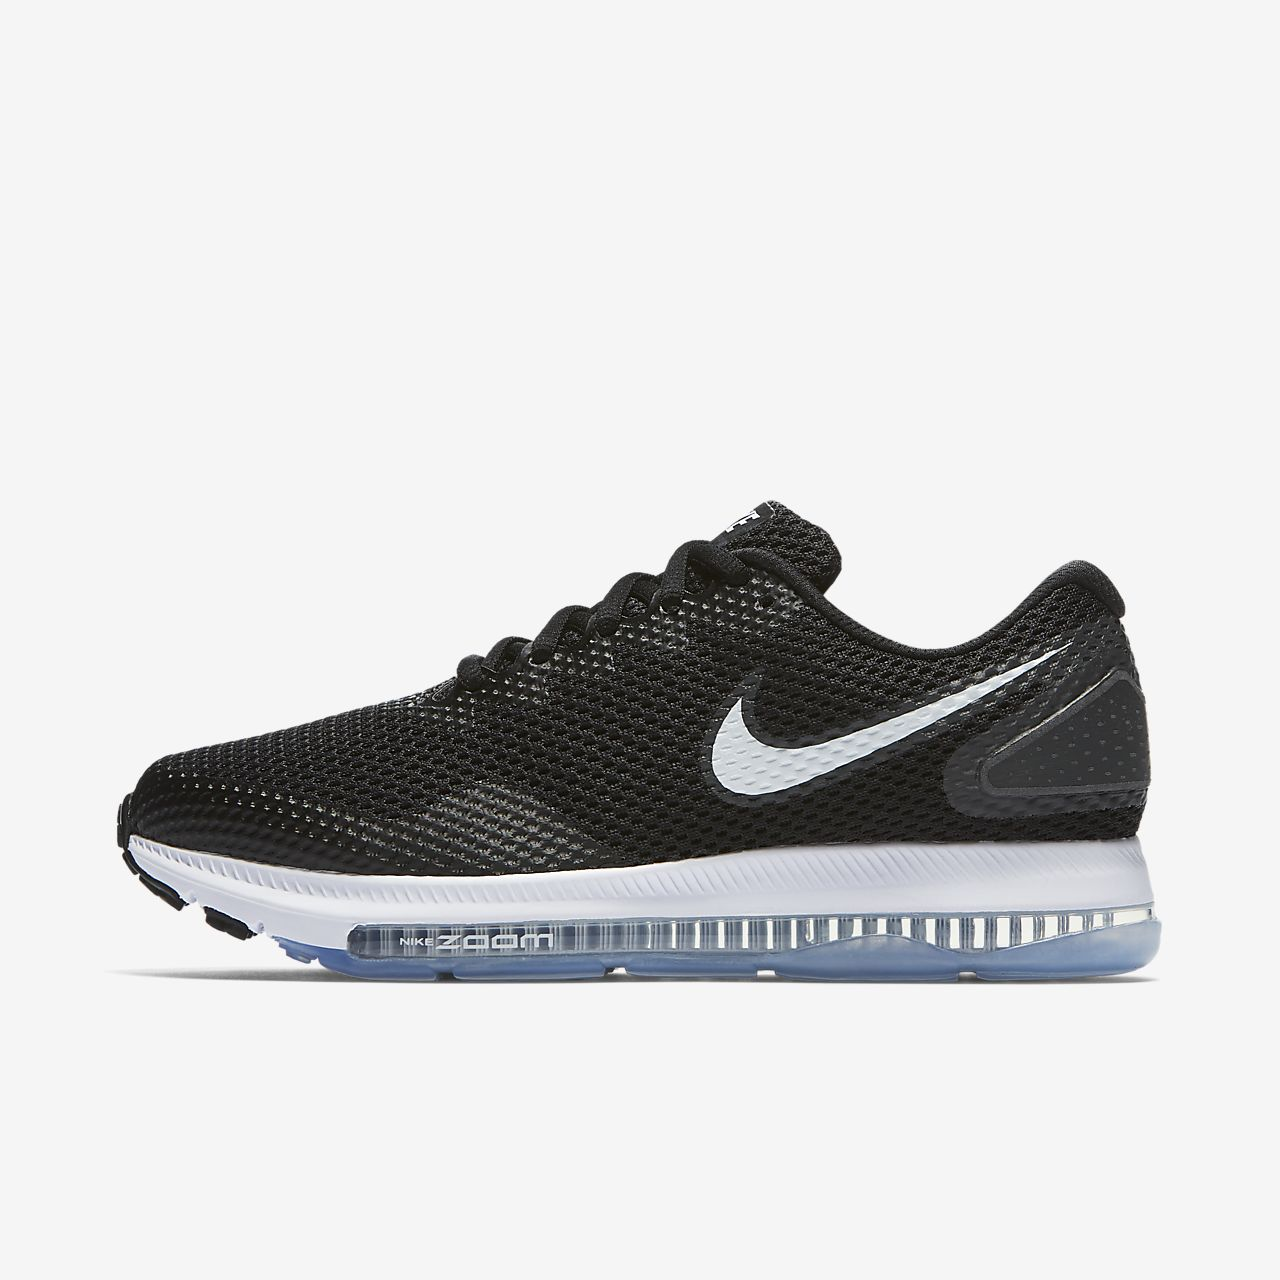 De Zoom All Nike Pour Out Low Chaussure Femme Running 2 OkXuPZi